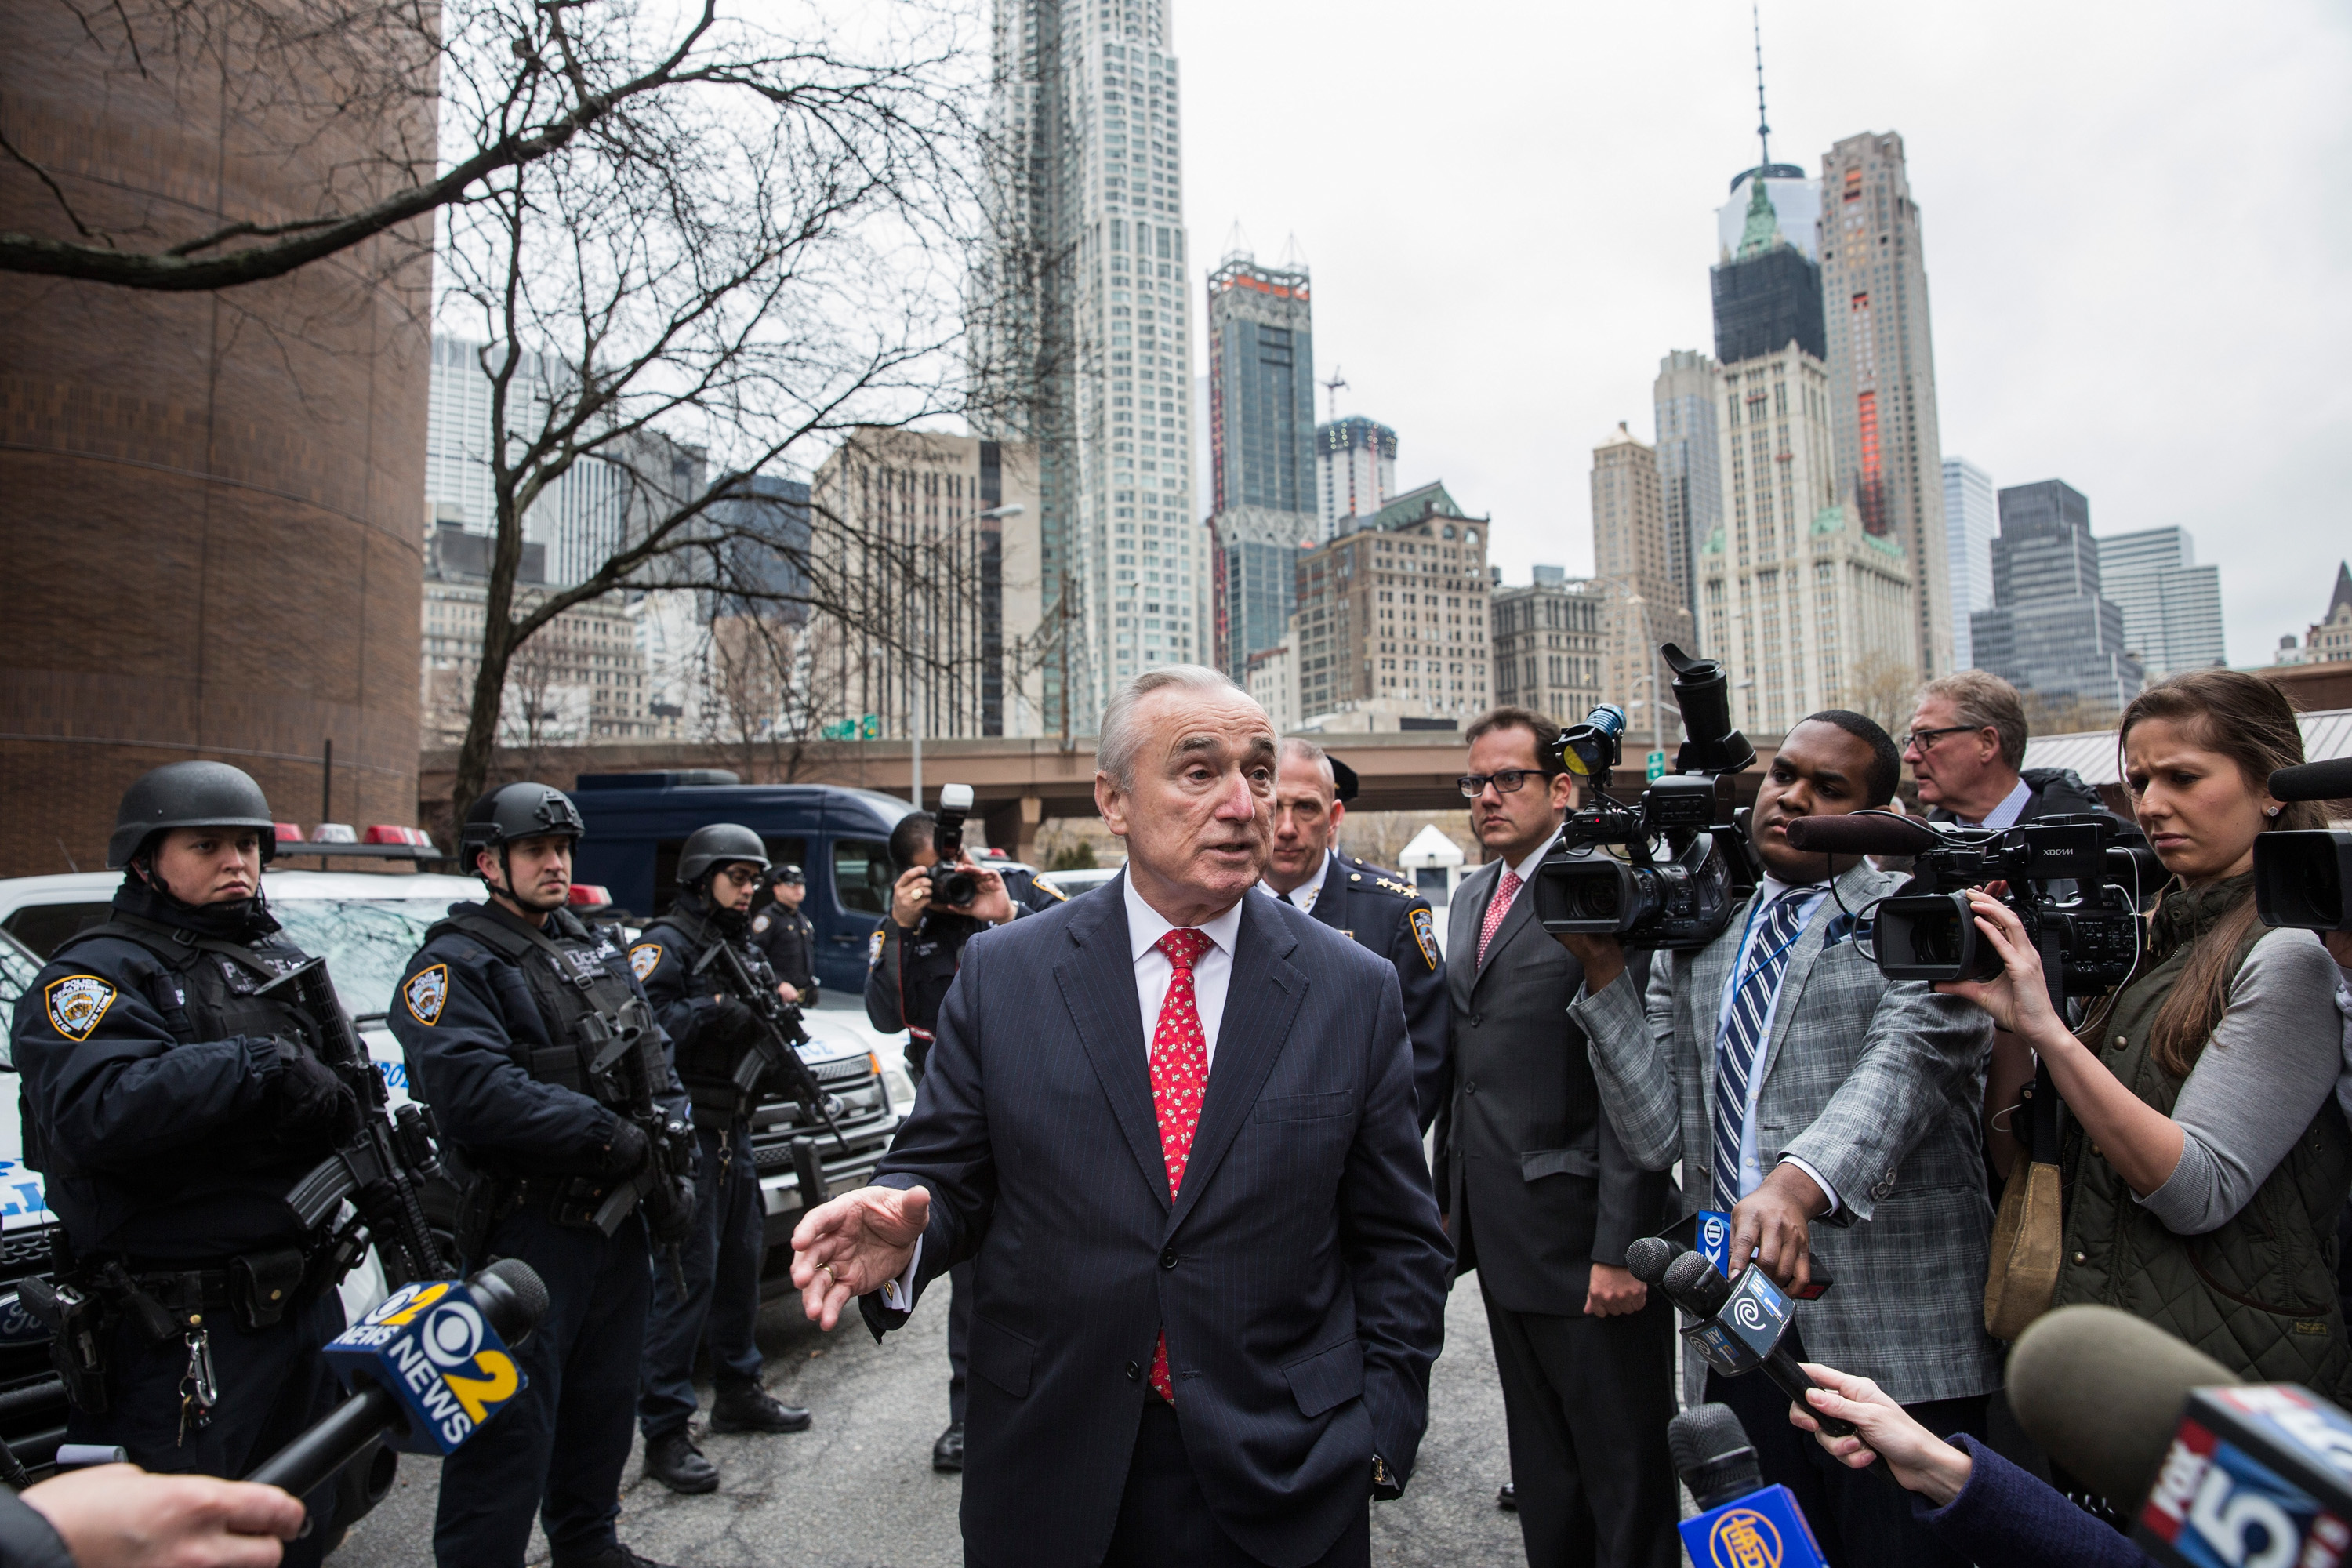 Police Commissioner Bill Bratton with NYPD officers and press.